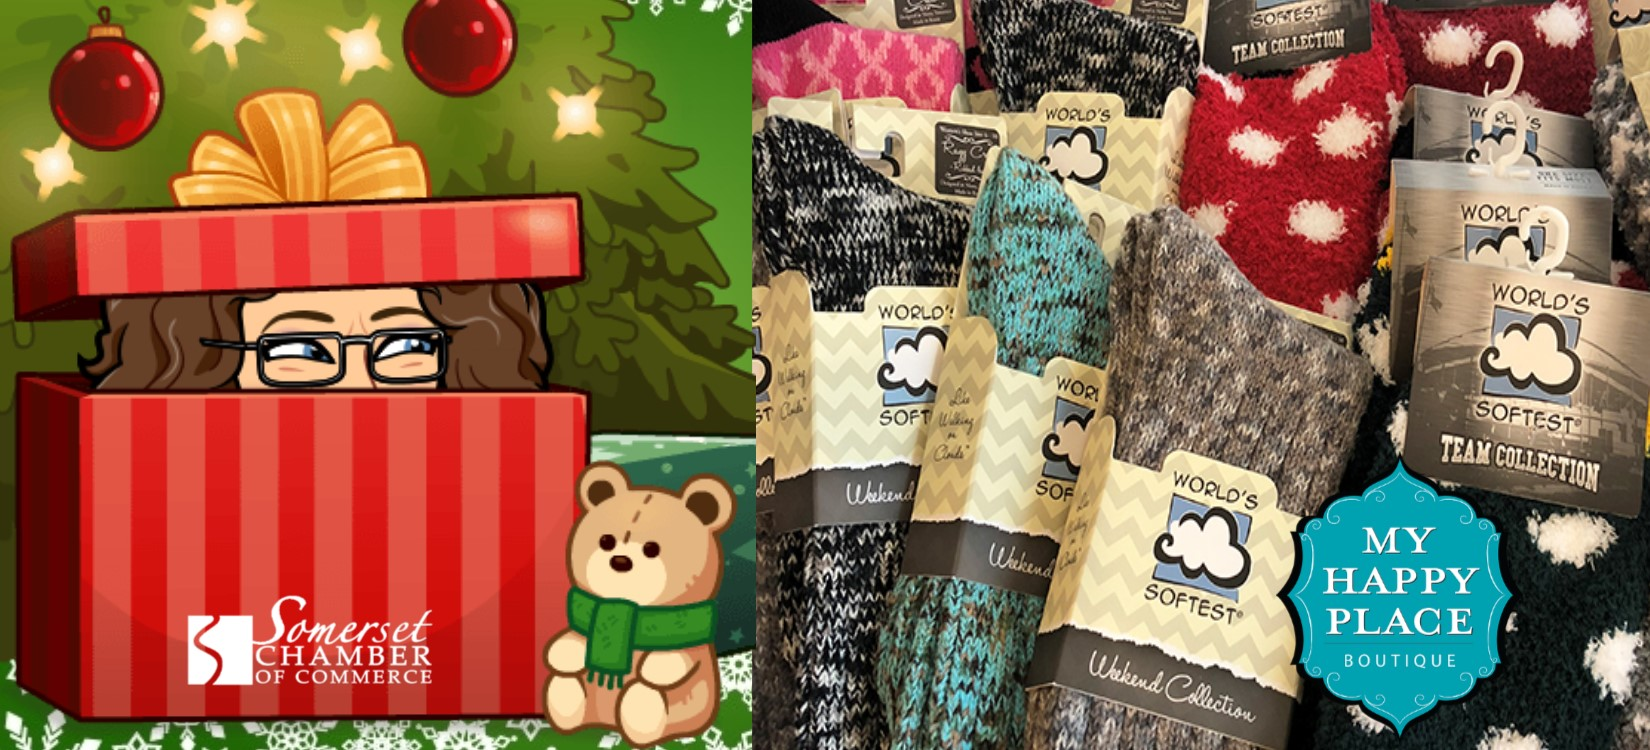 # 2 - World's Softest Socks - The search is over!! Our feet have never been so happy! You'd better run over to My Happy Place and grab some for your friends and loved ones before they're gone! Both the Somerset & Prescott locations have them! The best part is they're only $12. Great as stocking stuffers!($)